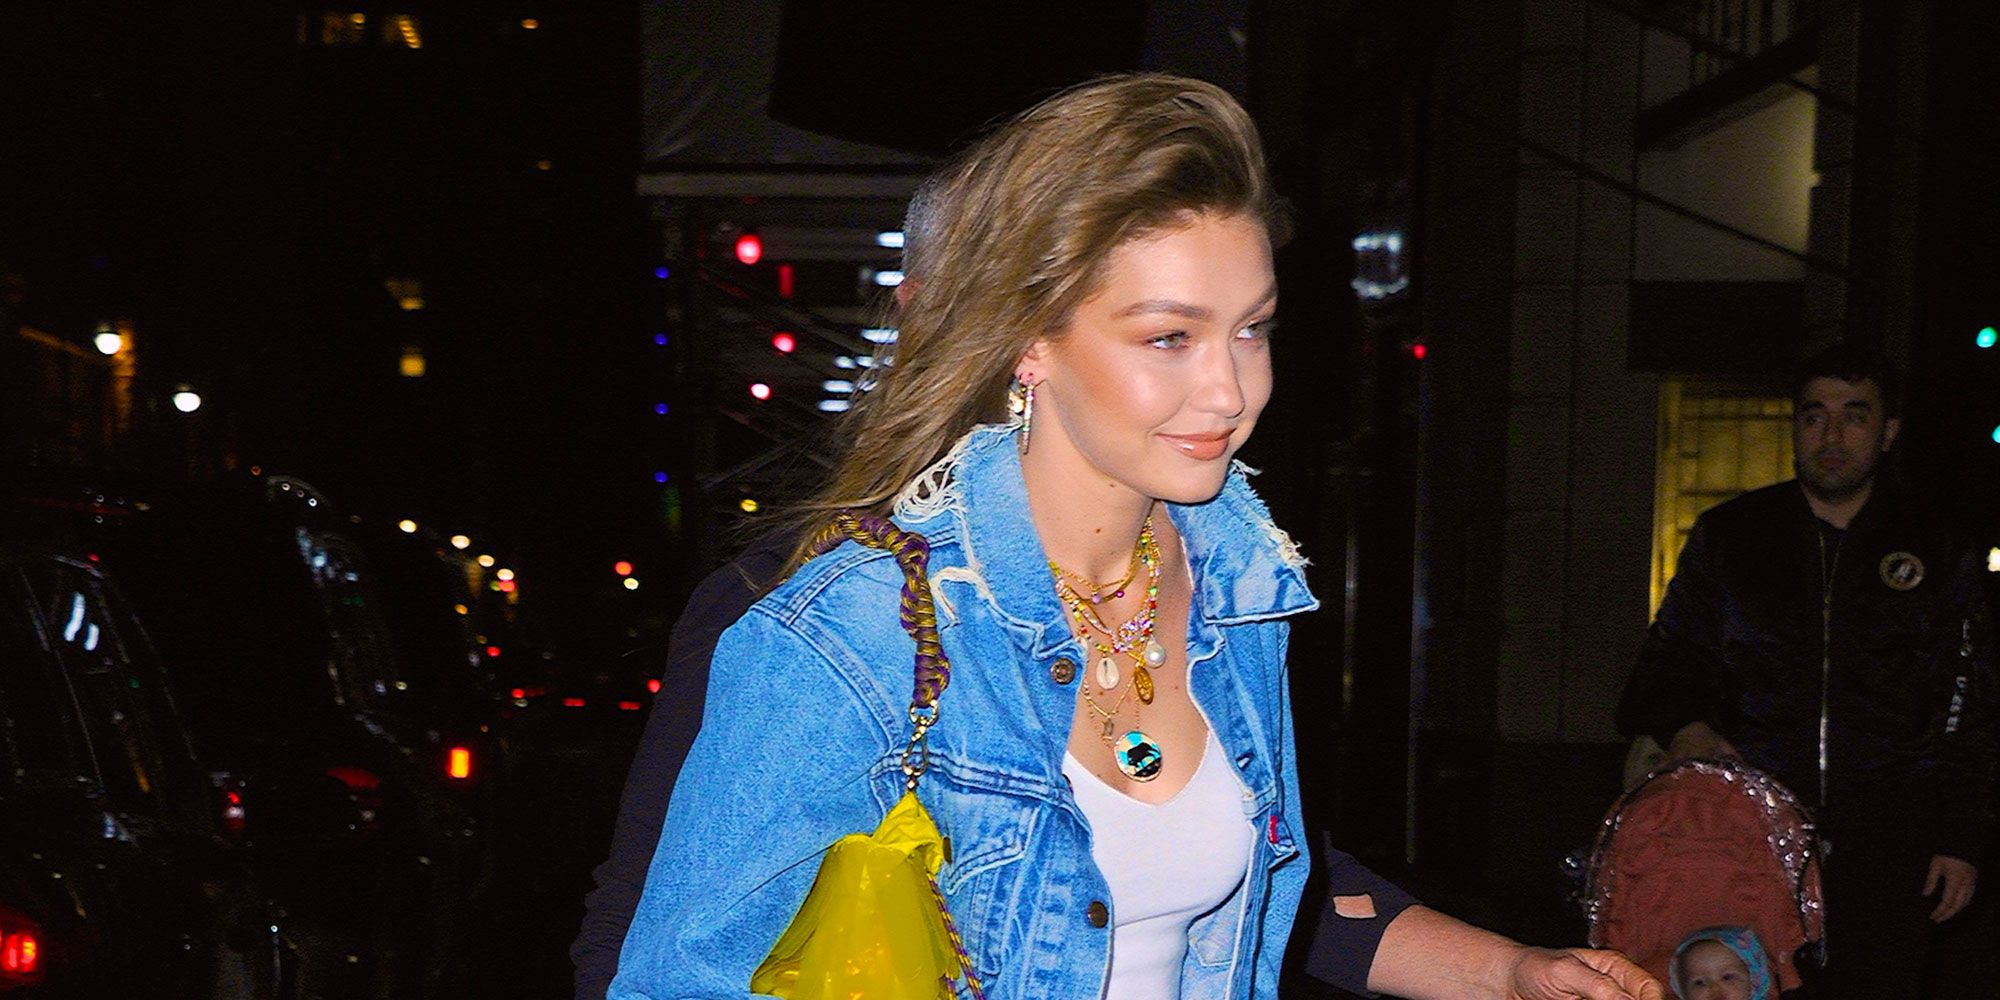 Gigi Hadid's denim themed birthday party